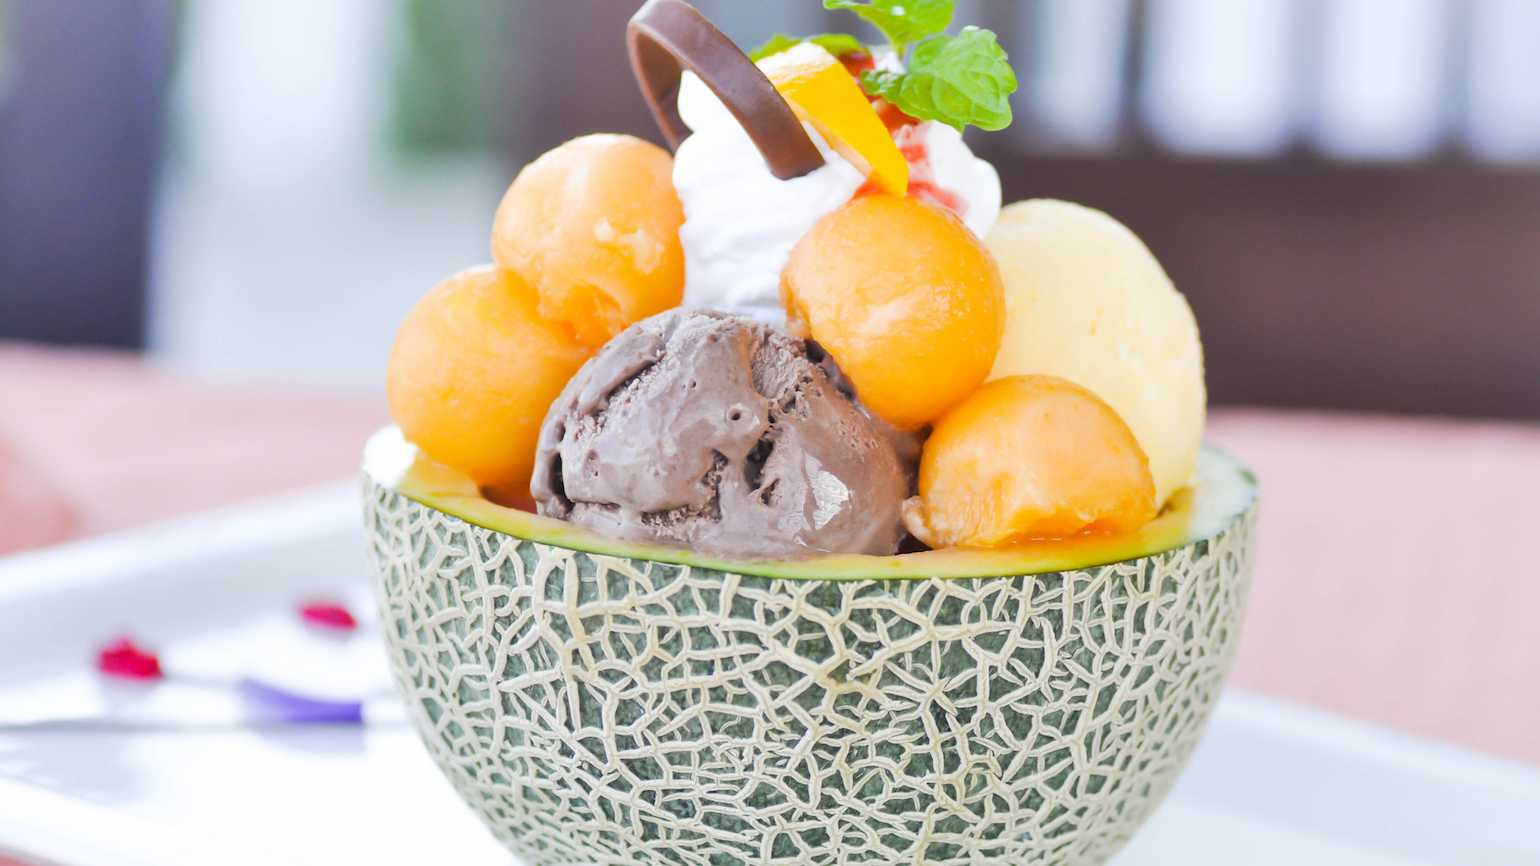 5 Fun New Ways To Enjoy Ice Cream Guideposts This homemade cantaloupe ice cream is so easy to make. 5 fun new ways to enjoy ice cream